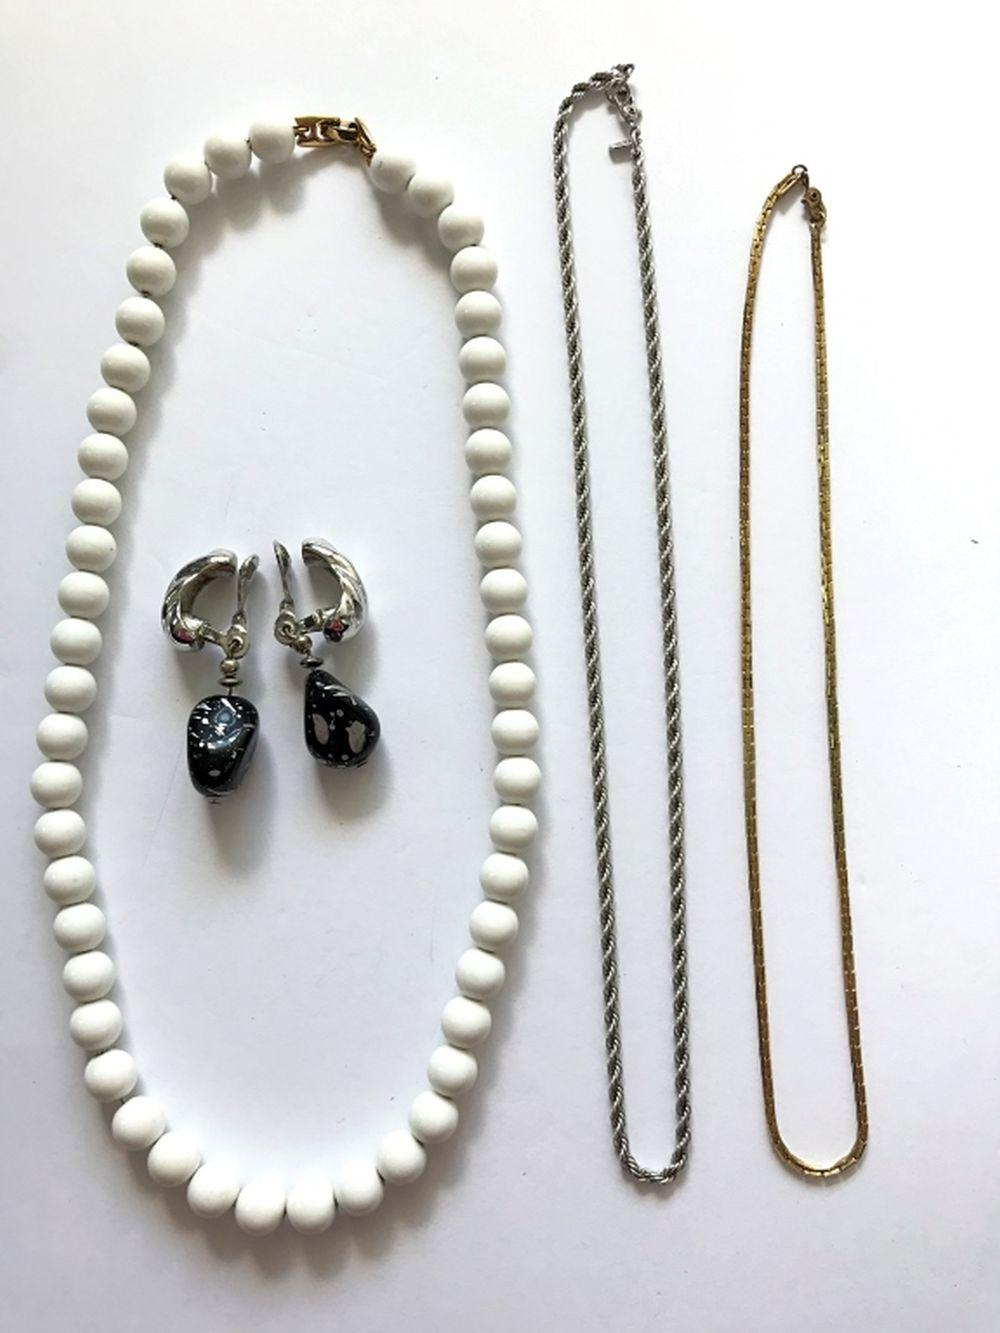 3 MONET NECKLACES + 1 PAIR OF EARRINGS